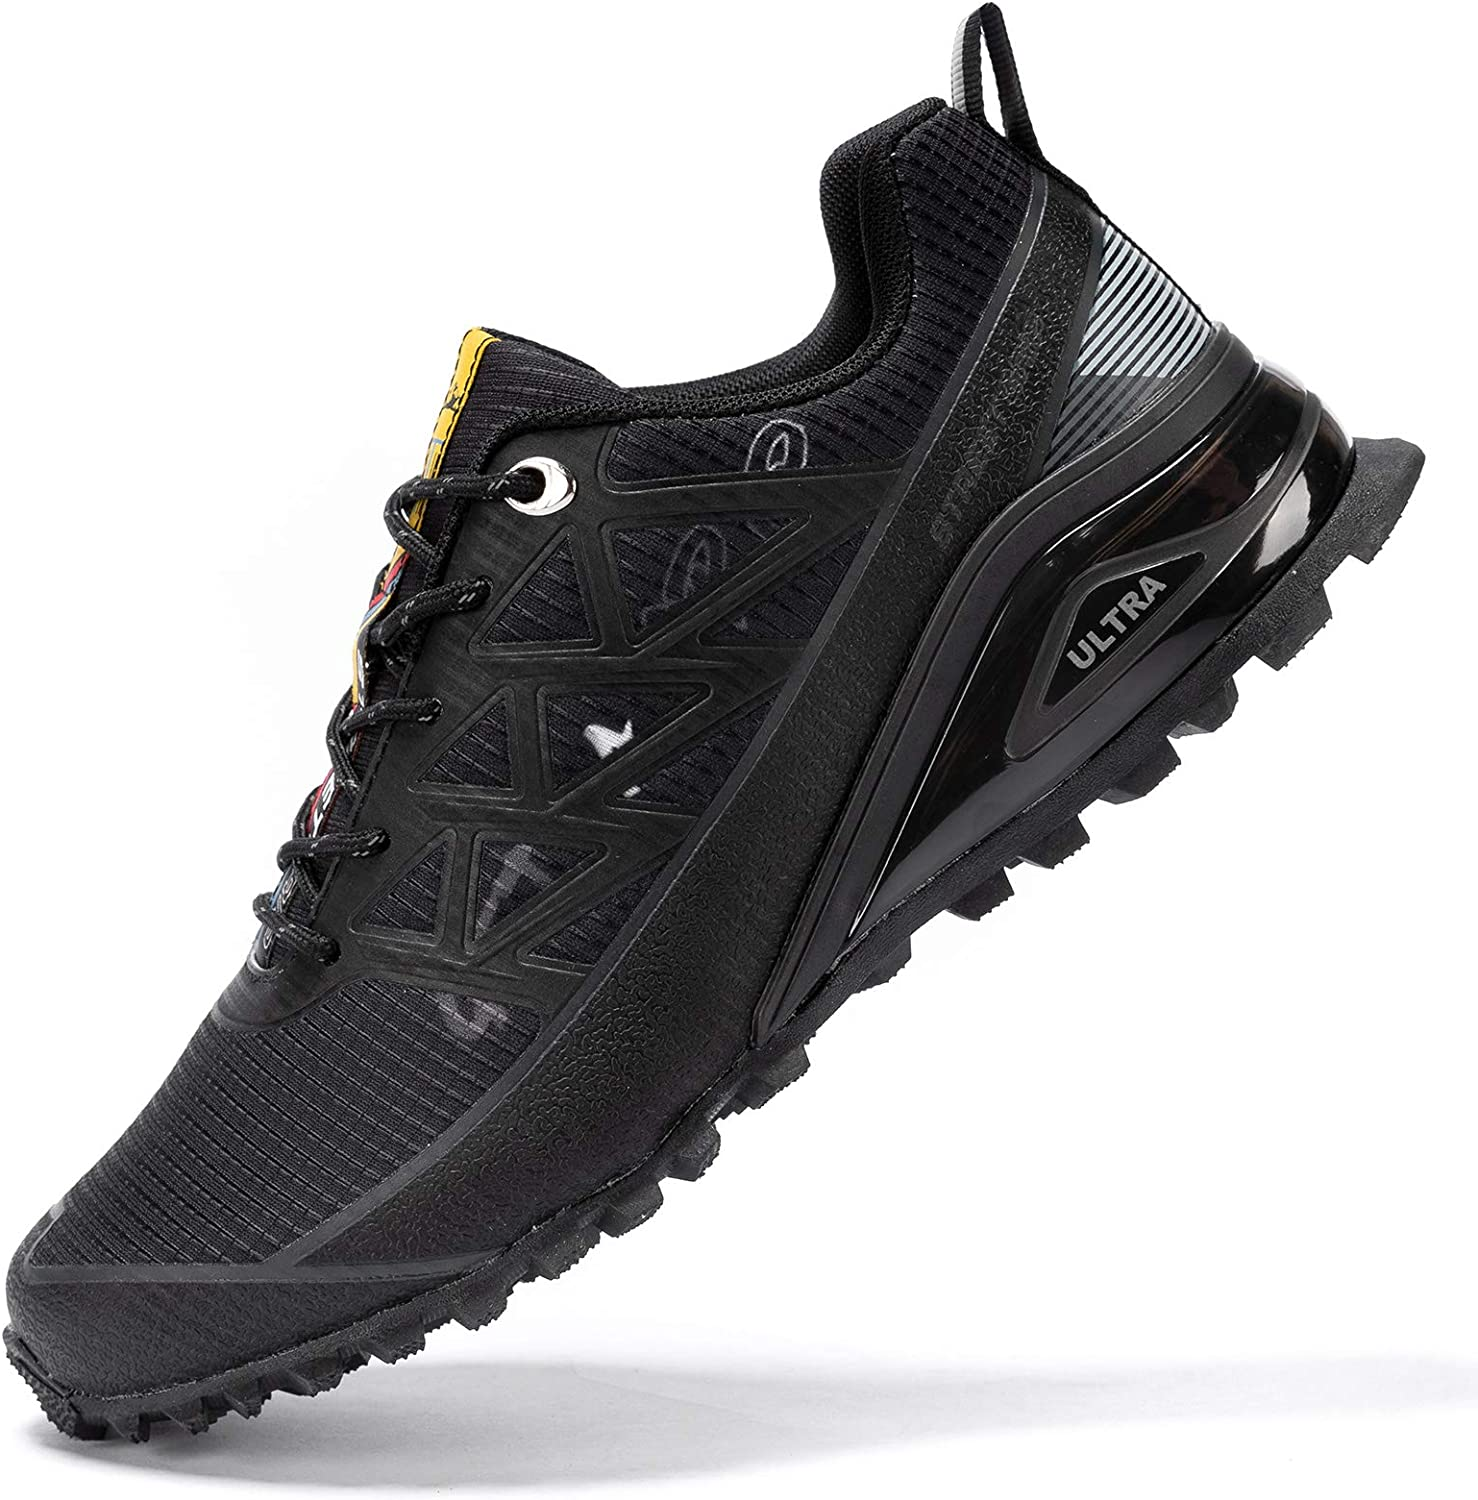 sold out Kricely Men's Trail Running Shoes Fashion Me for Regular store Sneakers Casual